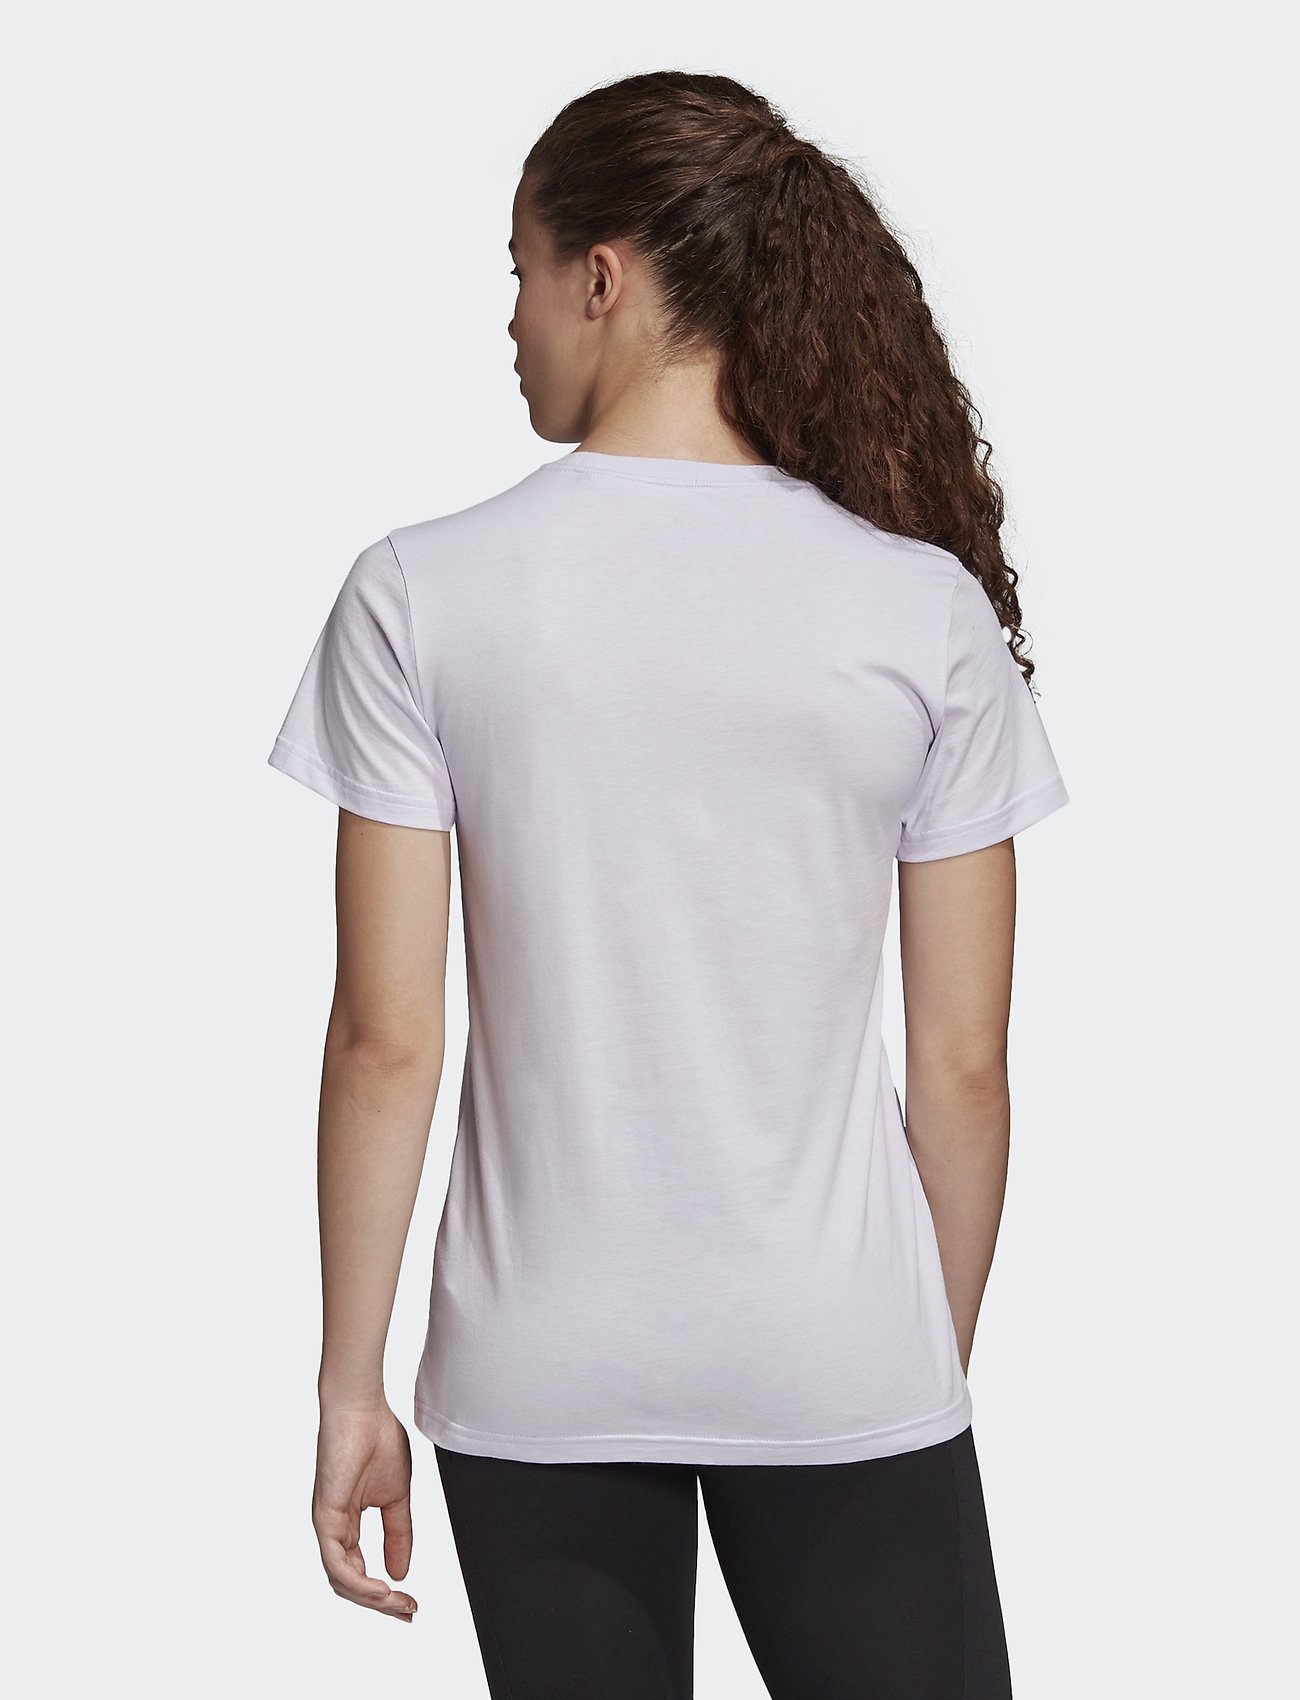 W Bos Co Tee (Prptnt) (17.47 €) - adidas Performance tALWE